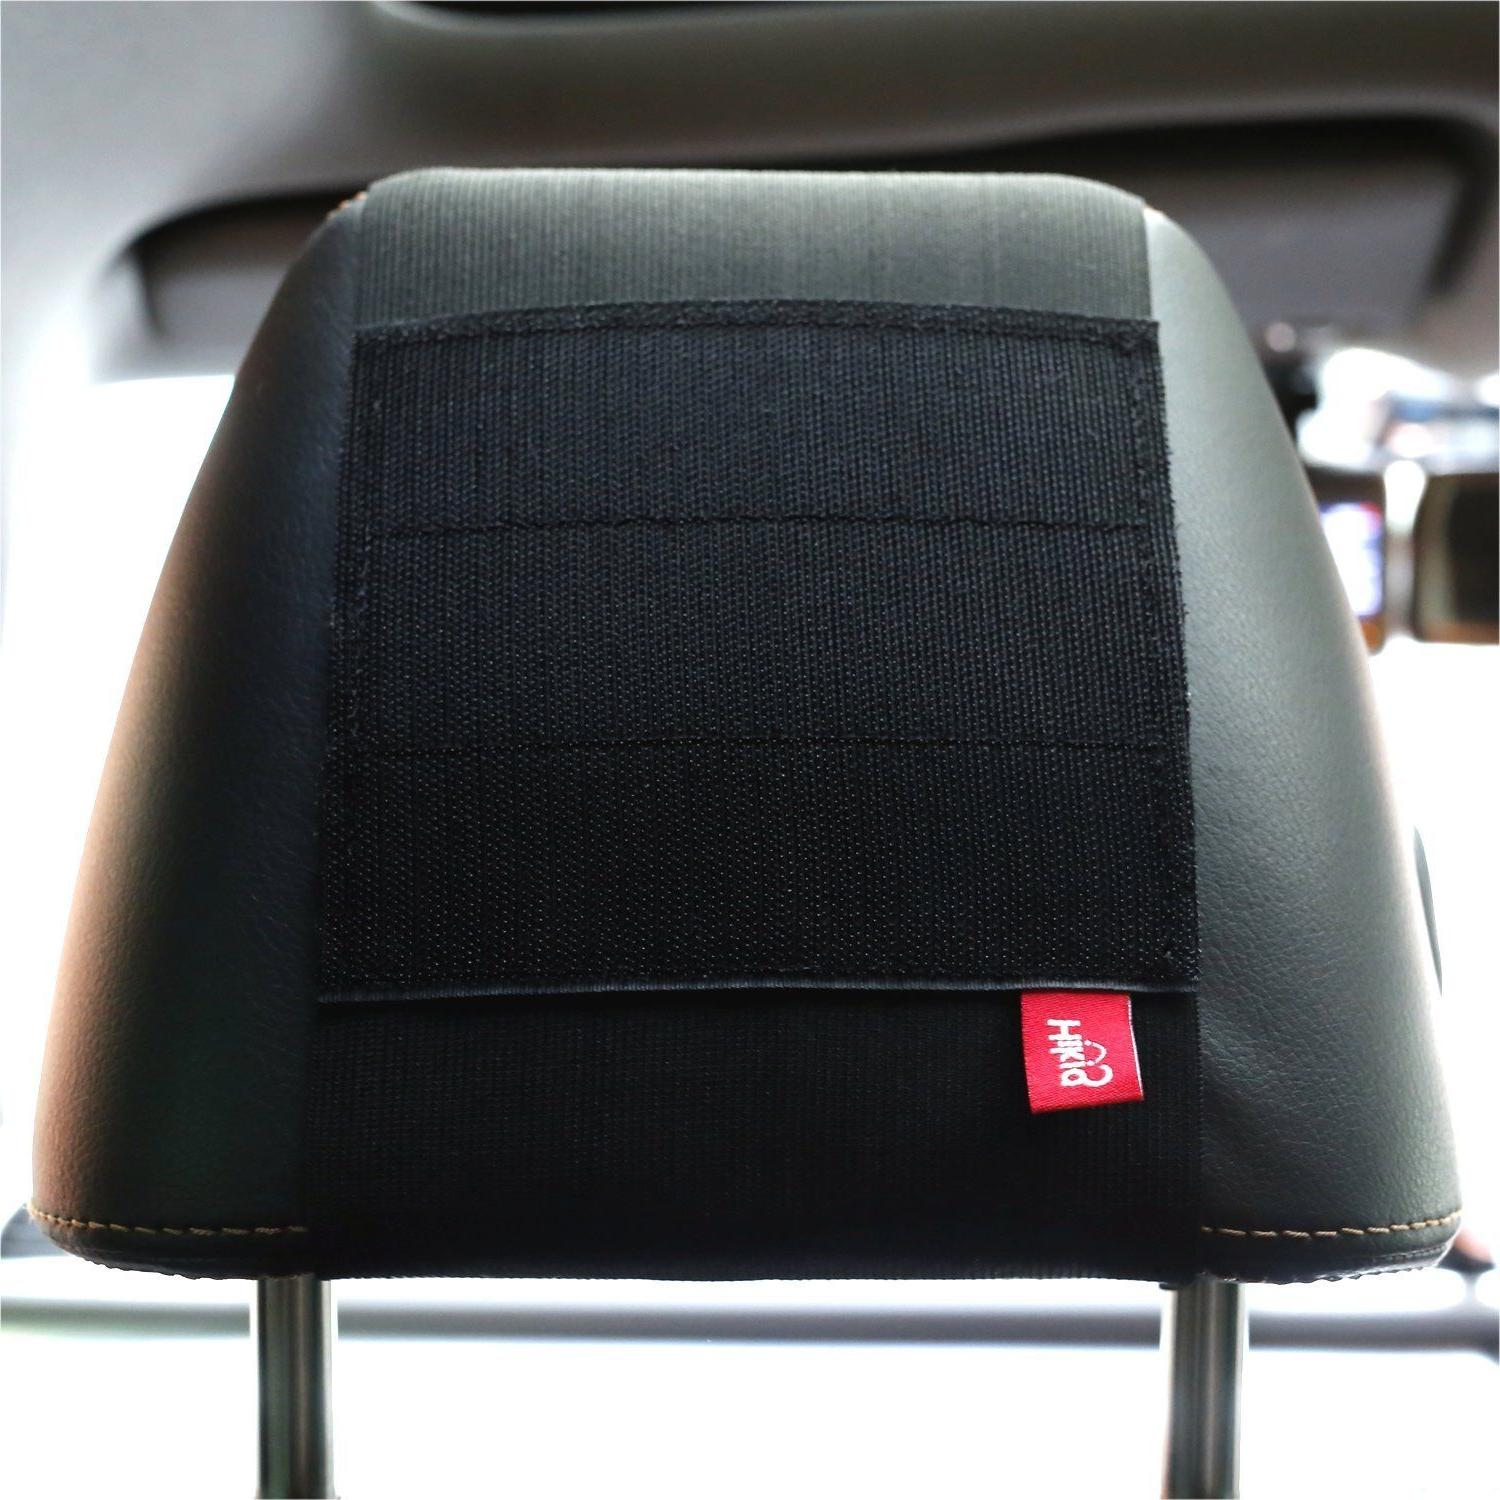 Car Headrest for all Kindle HD 6, HD 10 Editions